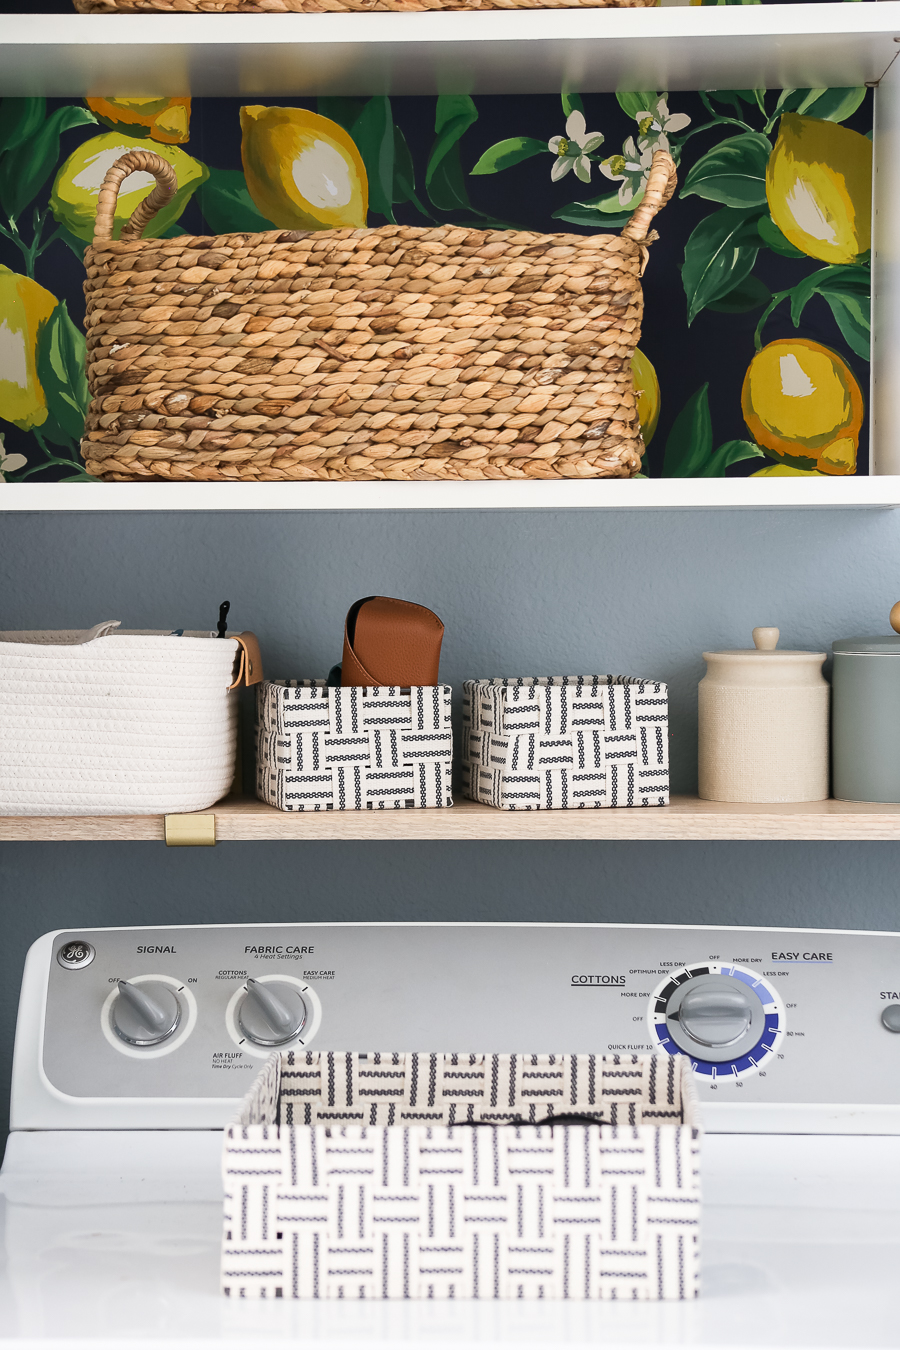 Storage in a small laundry room